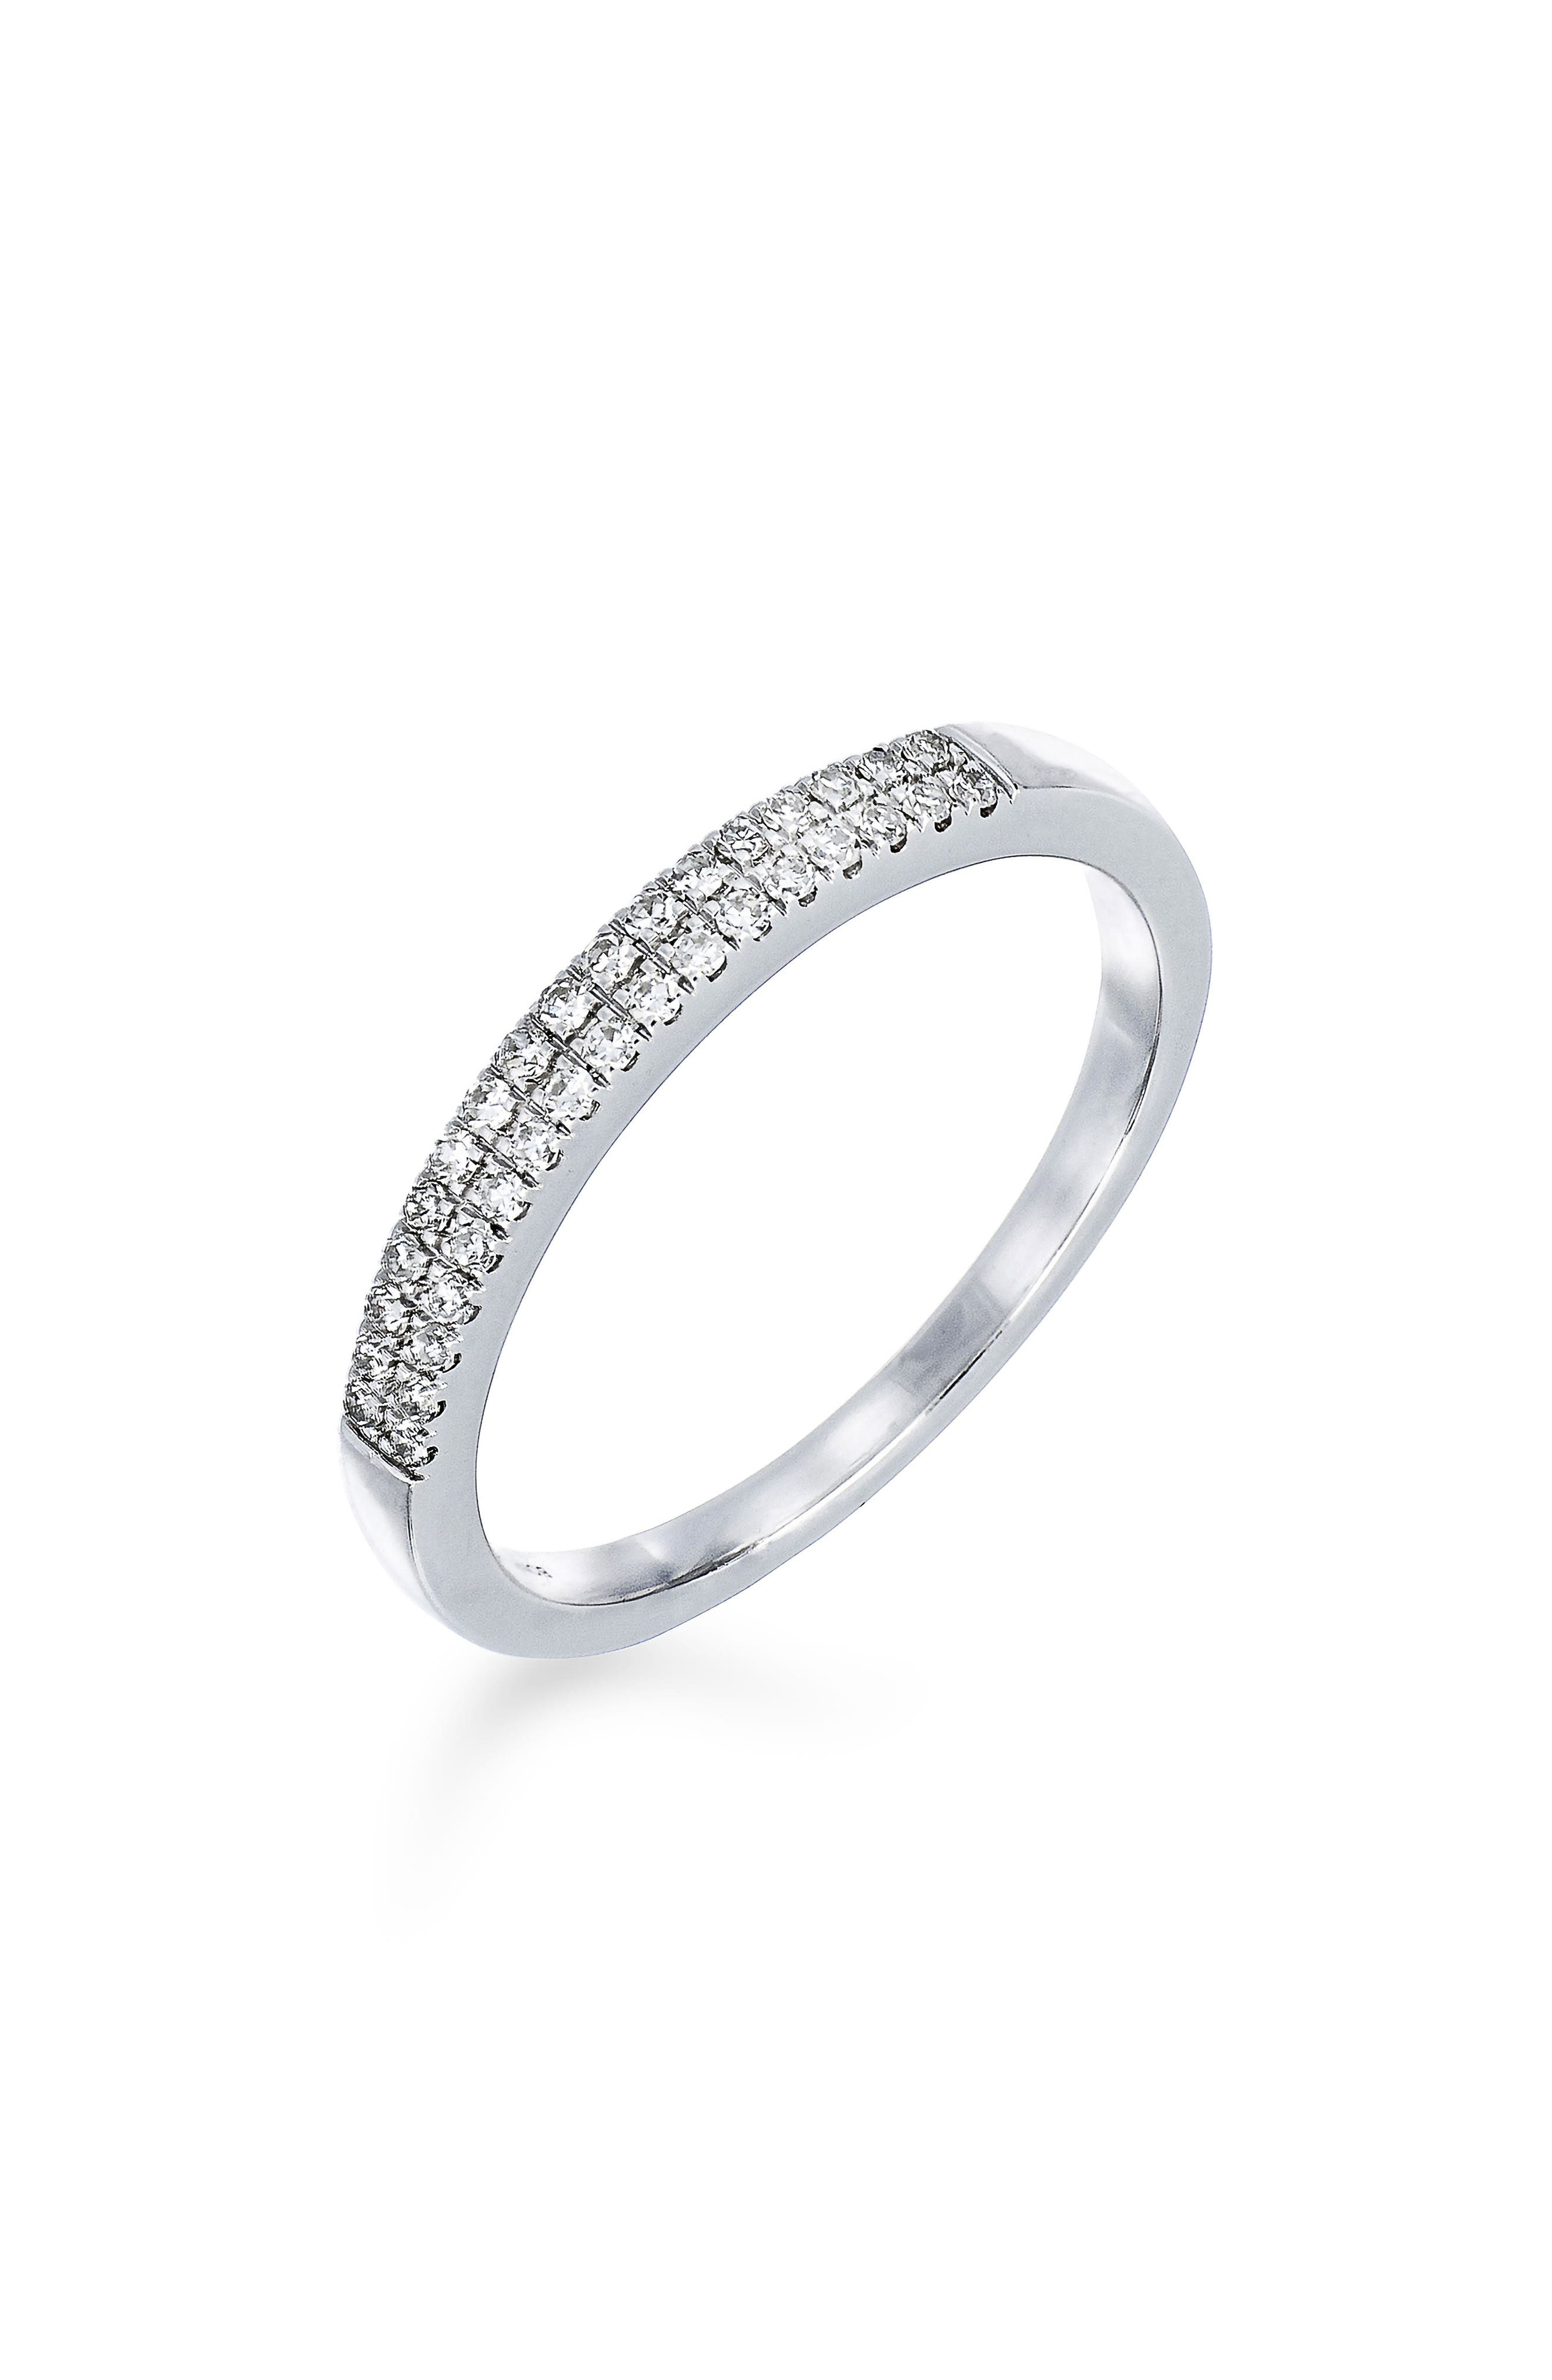 Carrière Double Row Diamond Stack Ring,                         Main,                         color, Sterling Silver/ Diamond